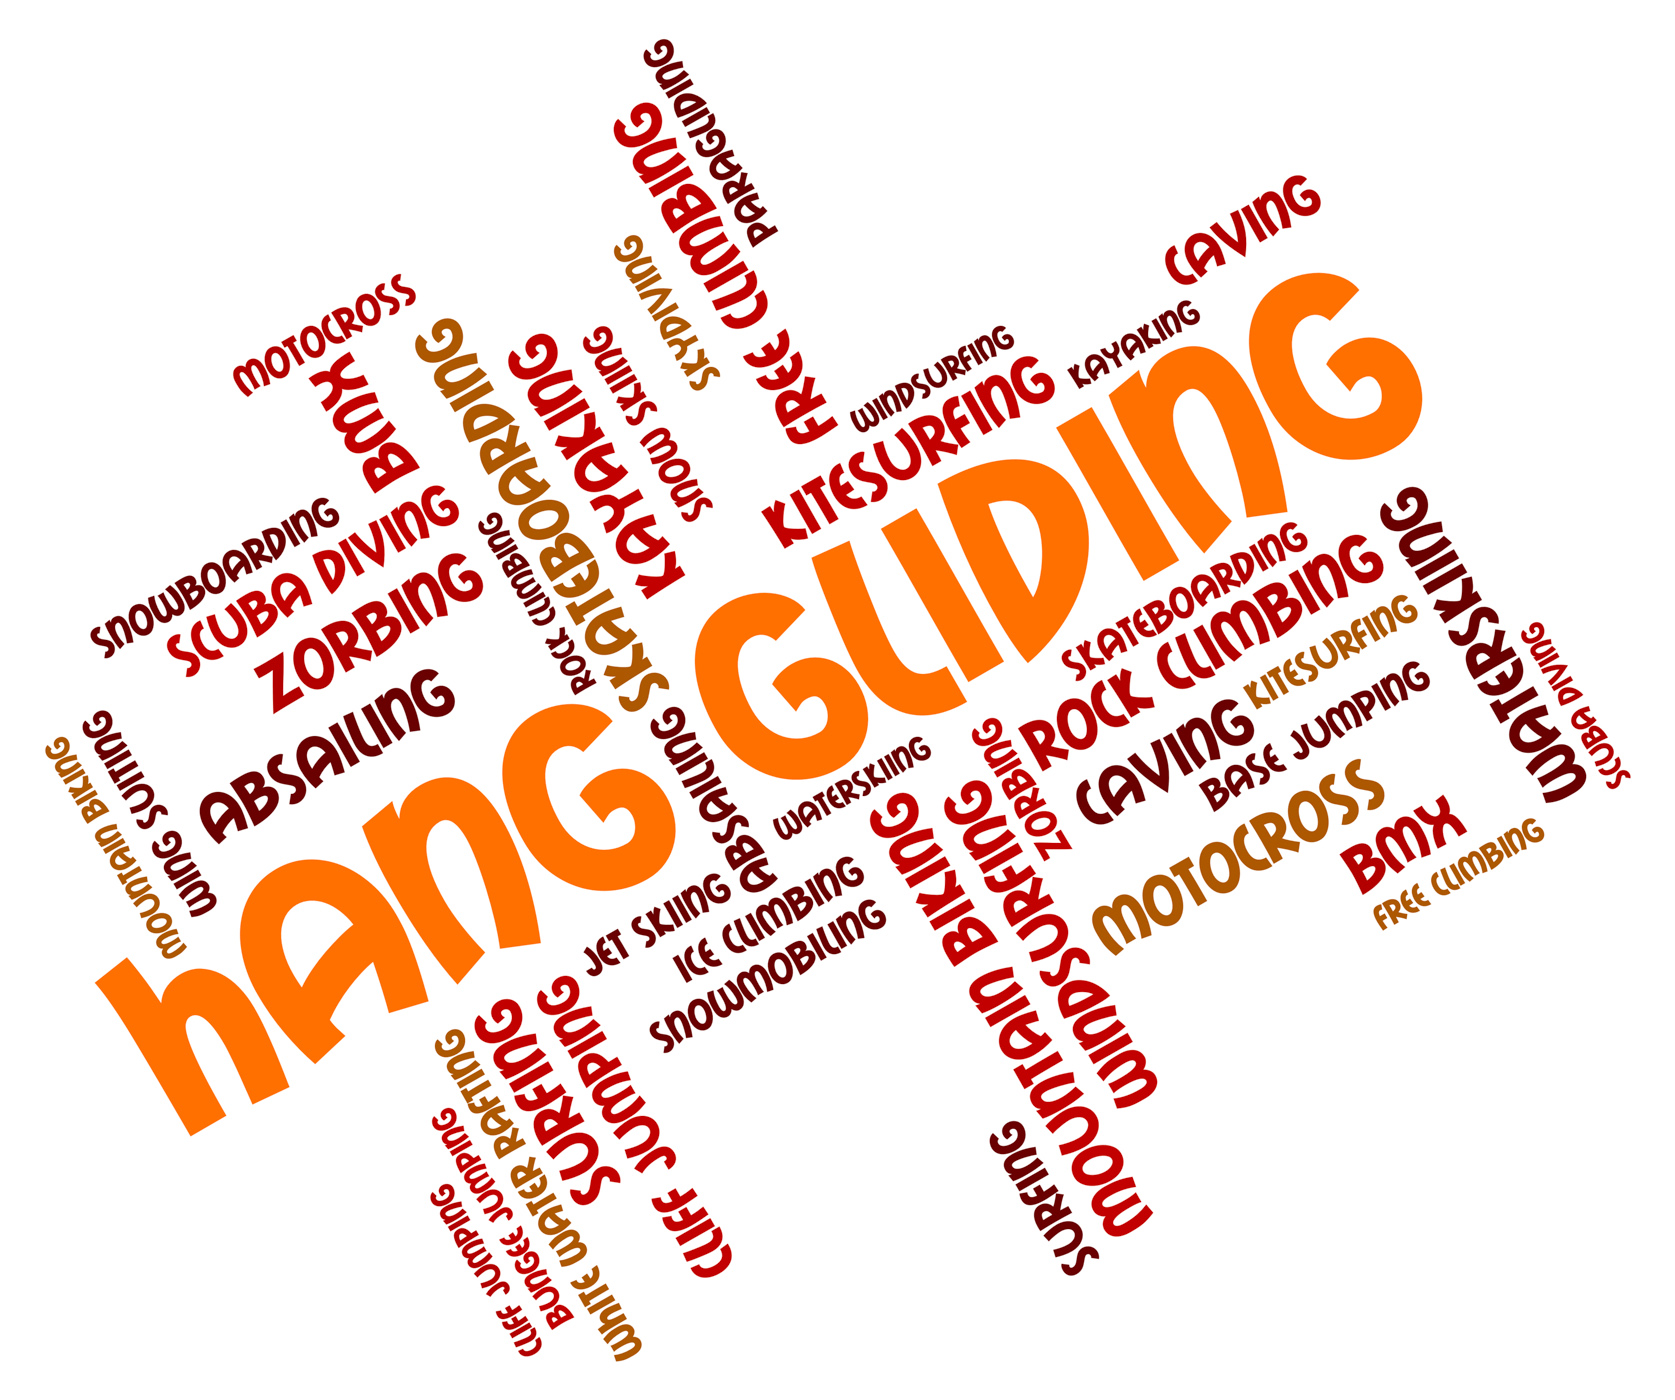 Hang Gliding Means Hanggliders Words And Glide, Glide, Glider, Hang, Hang-glider, HQ Photo